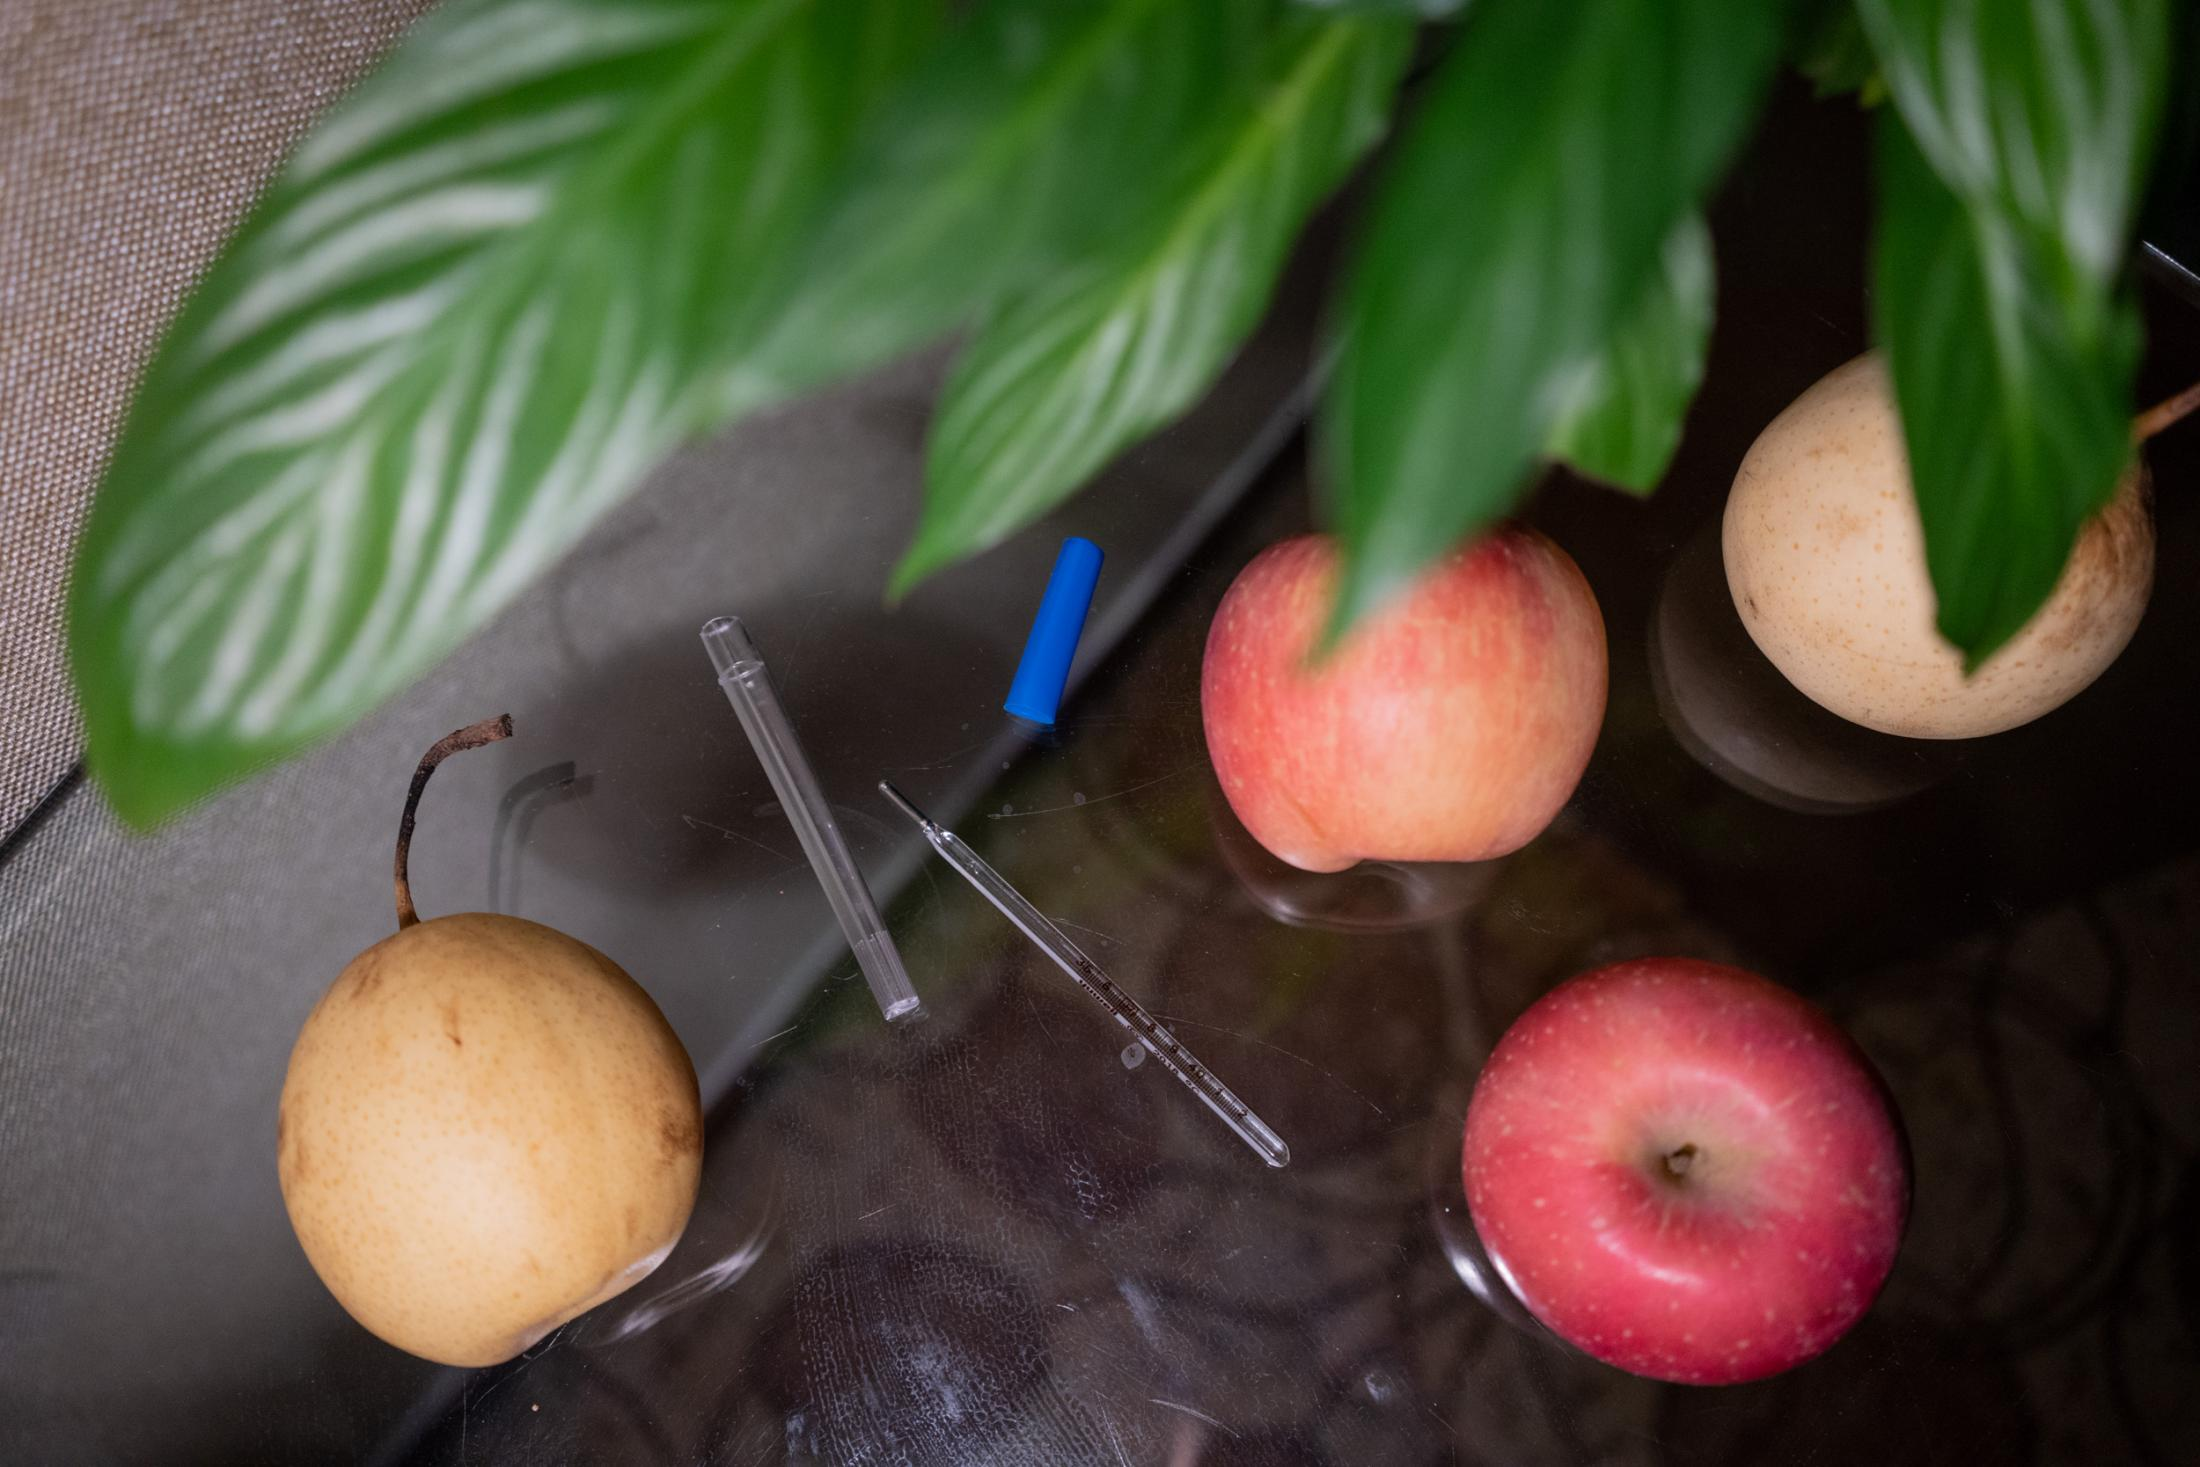 A mercury thermometer and some fruits on my desk, which mark the rhythm of the quarantine days: We have to take our temperature with the thermometer and report to the front desk everyday at 9 AM and 4 PM. We are given a fruit, usually an apple or a pear, at every meal.